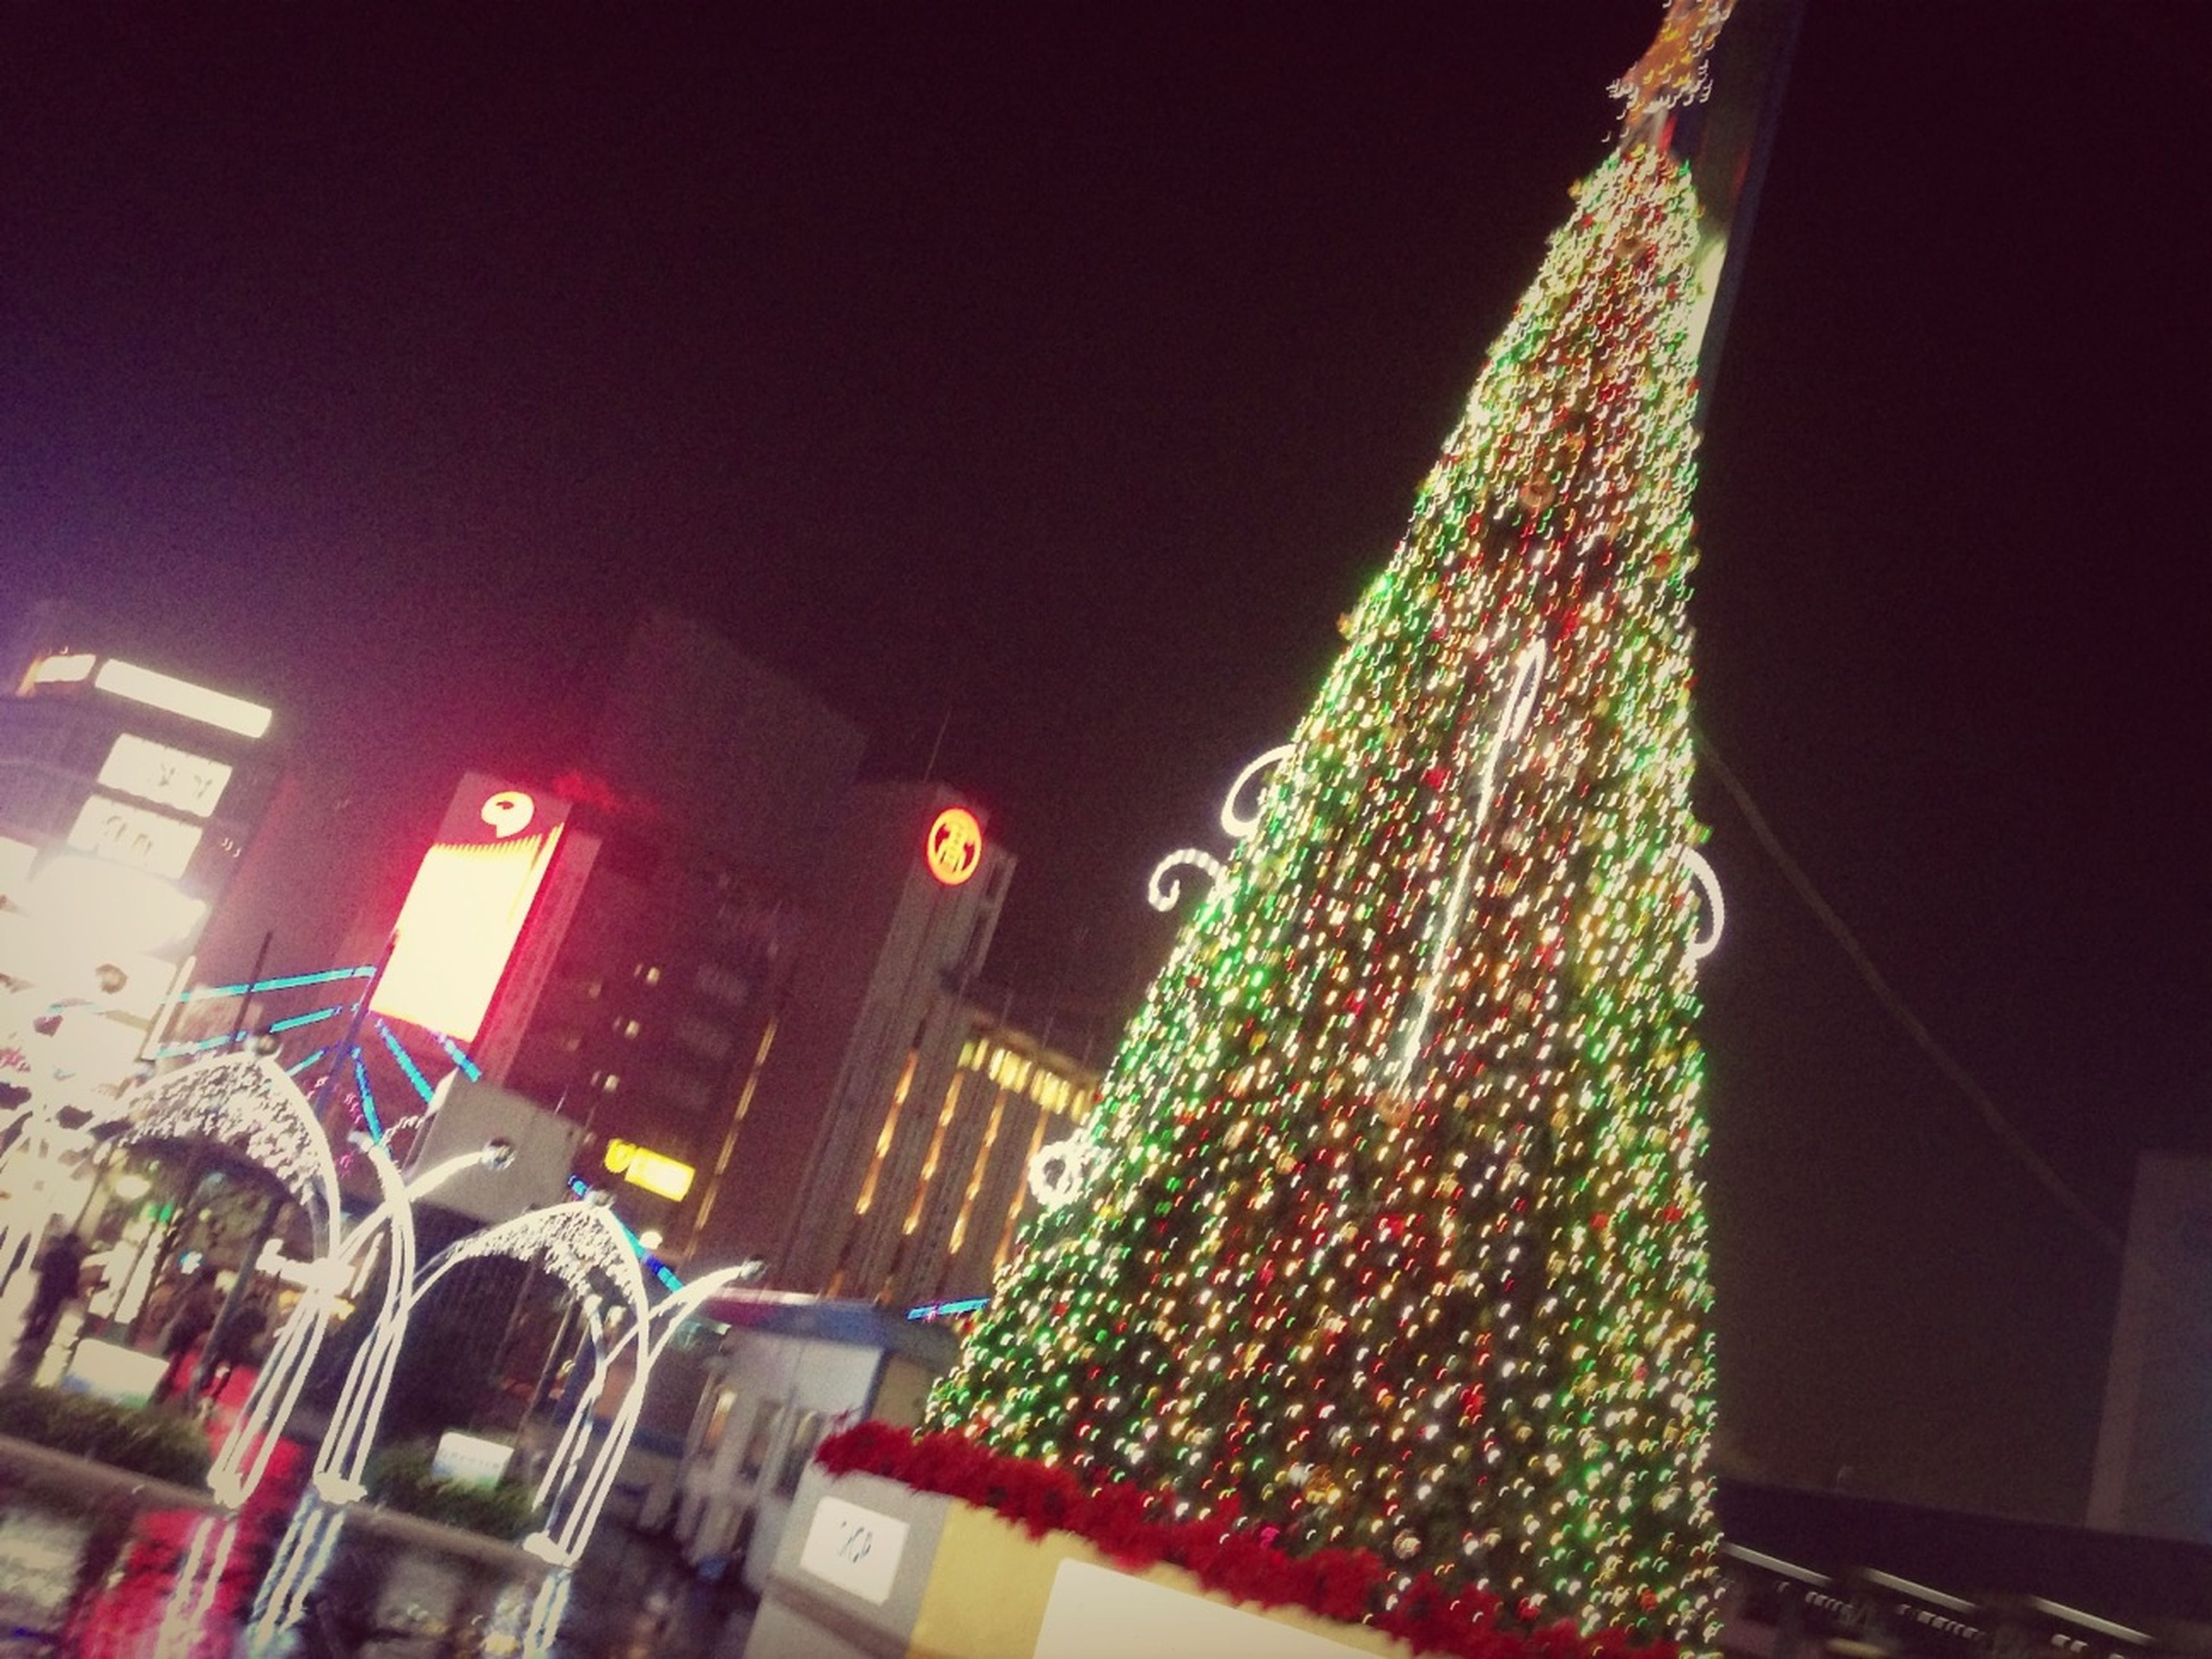 illuminated, architecture, building exterior, night, built structure, city, low angle view, decoration, lighting equipment, clear sky, building, no people, residential building, outdoors, hanging, multi colored, christmas, residential structure, celebration, city life